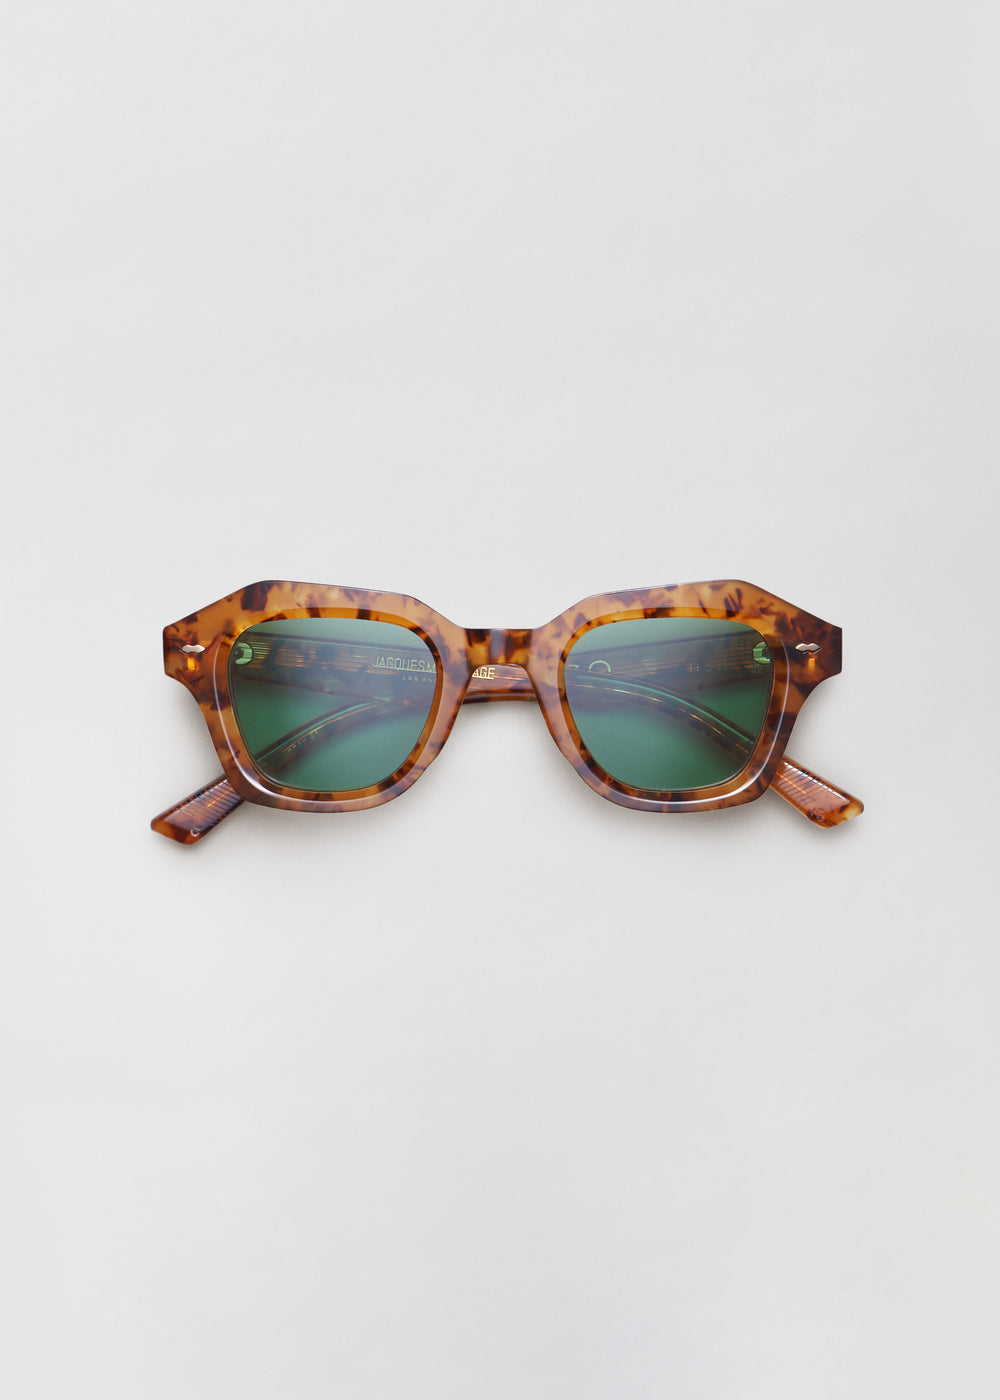 Schindler Sunglasses in Noir in Vintage Tortoise by Co Collections